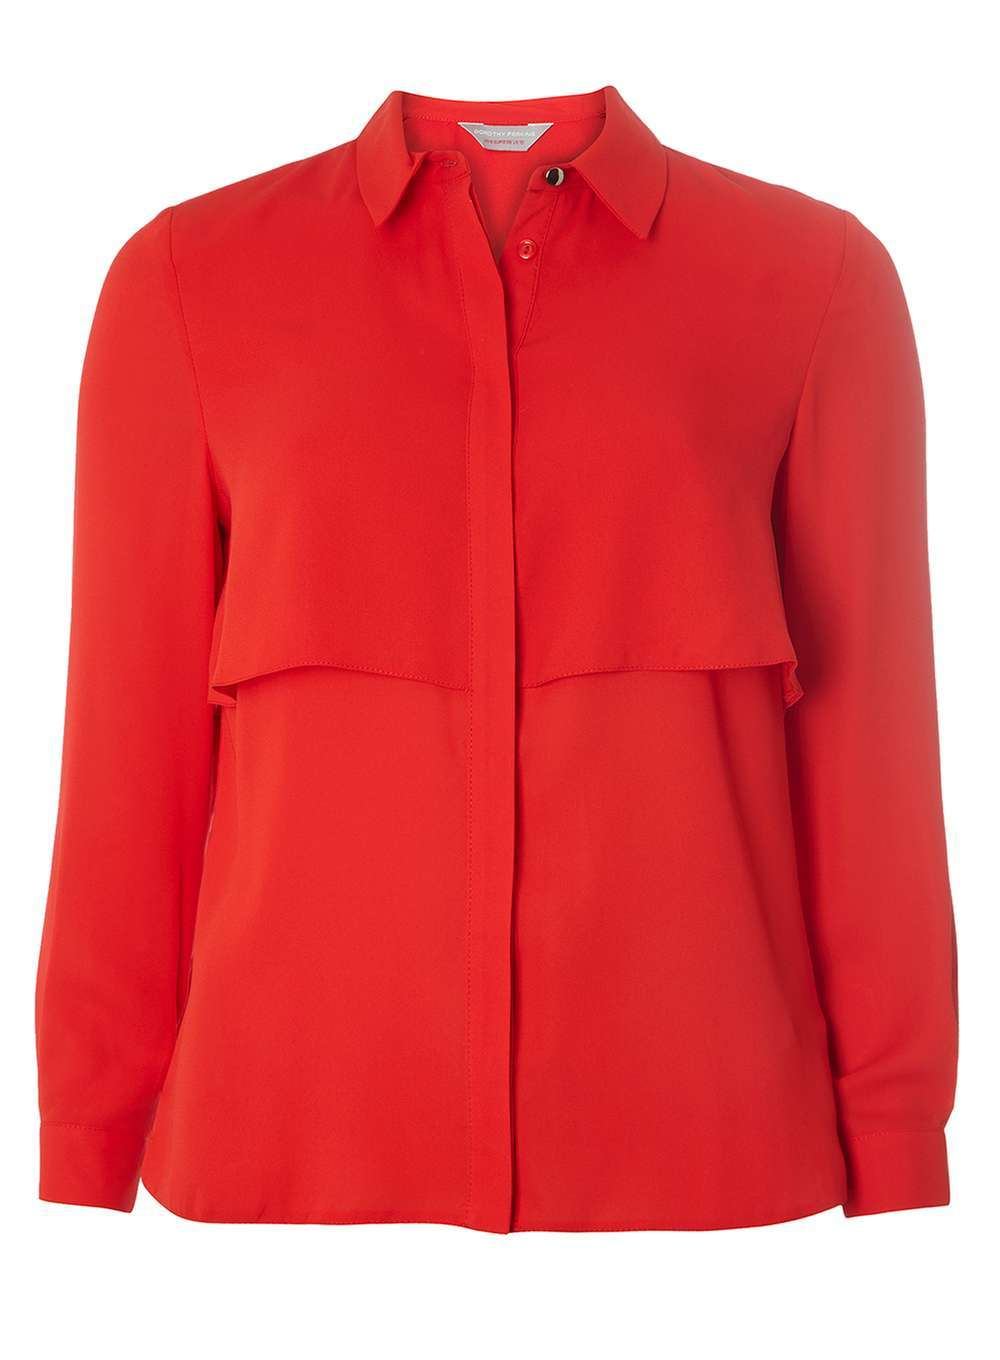 Womens Petite Red Double Layered Shirt Red - neckline: shirt collar/peter pan/zip with opening; pattern: plain; style: shirt; predominant colour: true red; occasions: casual, work, creative work; length: standard; fibres: polyester/polyamide - 100%; fit: body skimming; sleeve length: long sleeve; sleeve style: standard; texture group: sheer fabrics/chiffon/organza etc.; bust detail: bulky details at bust; pattern type: fabric; season: a/w 2016; wardrobe: highlight